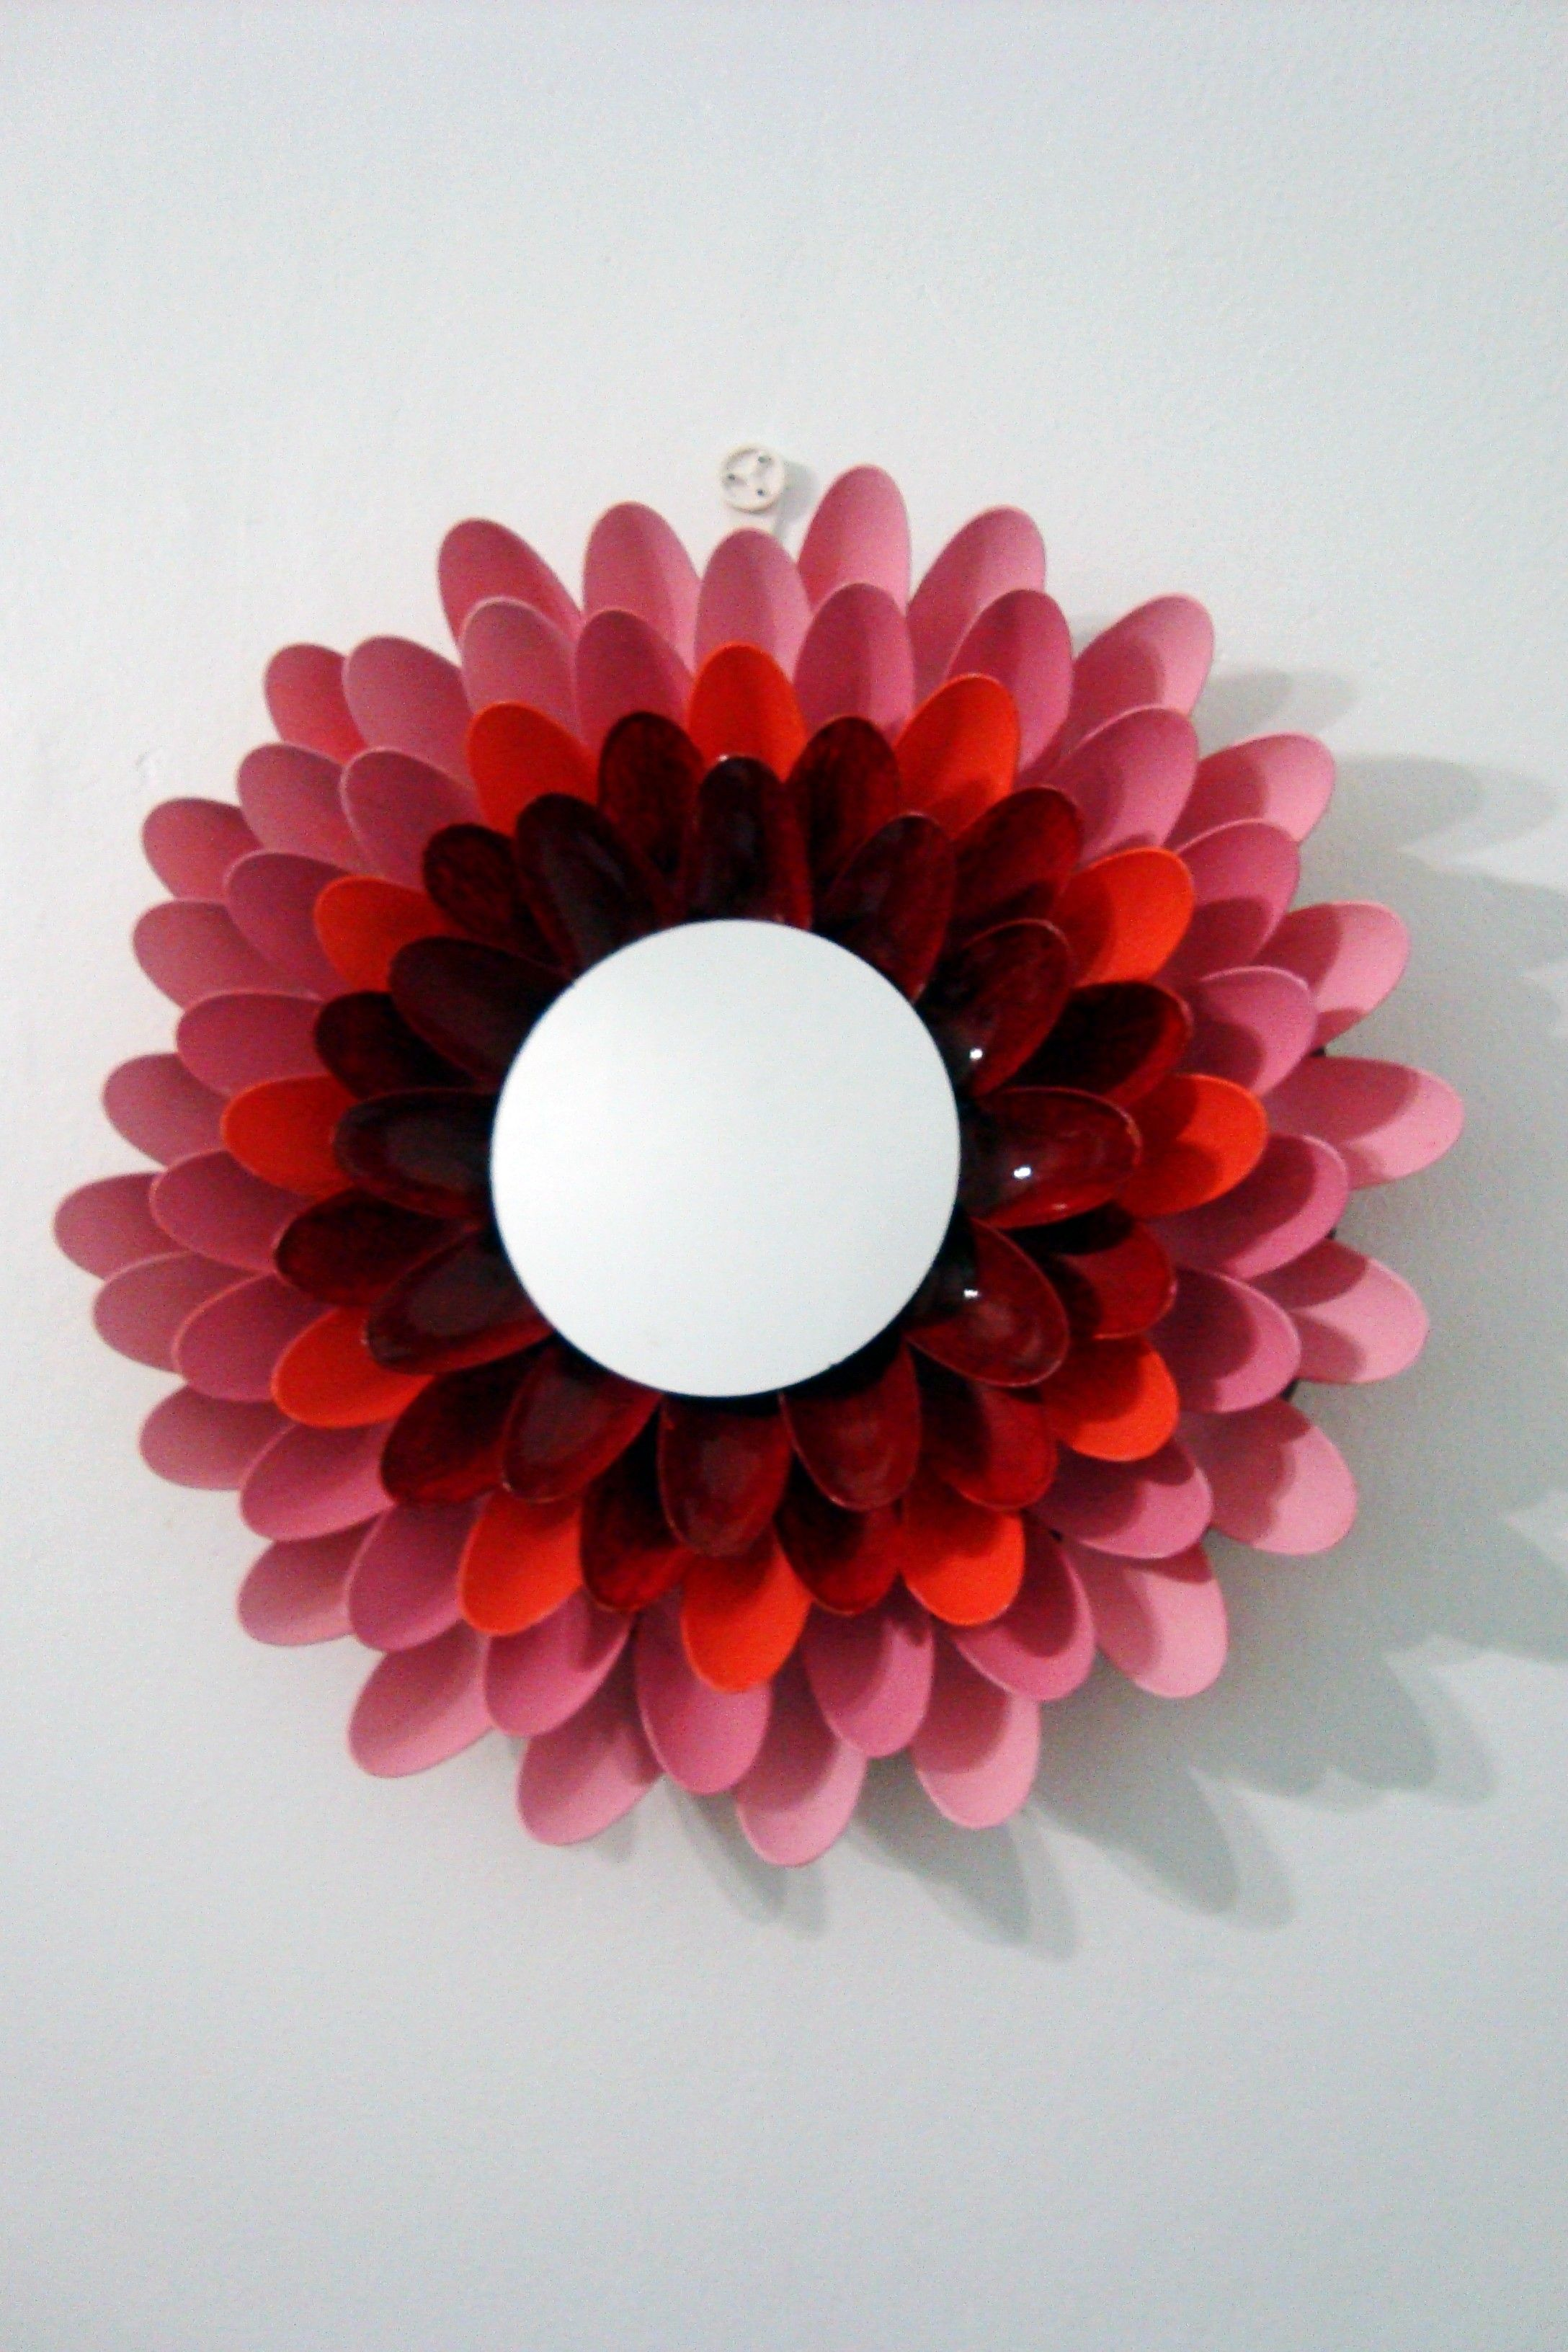 DIY Flower mirror made with plastic spoons